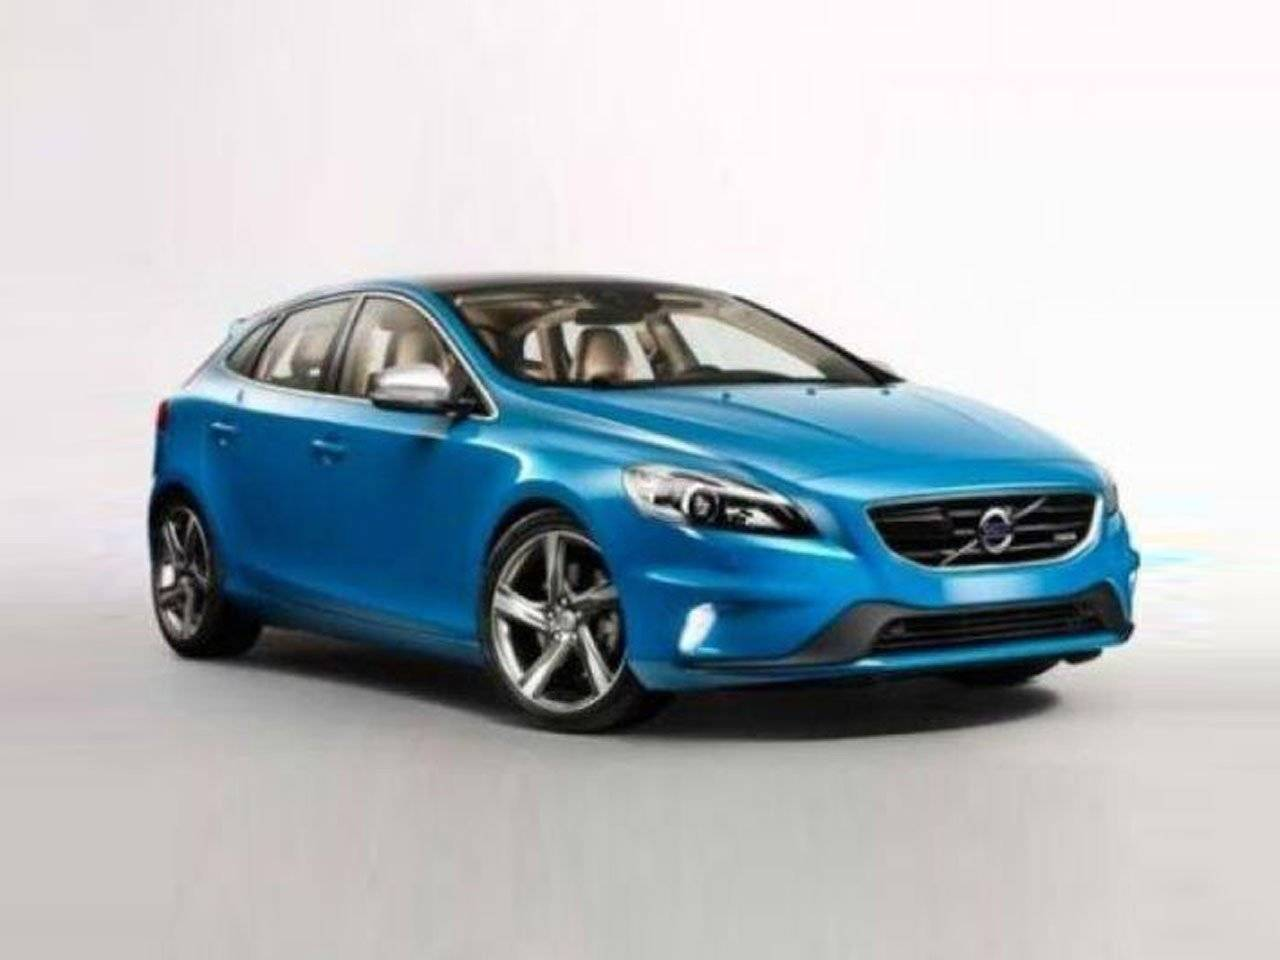 volvo v40 r design duikt te vroeg op autonieuws. Black Bedroom Furniture Sets. Home Design Ideas